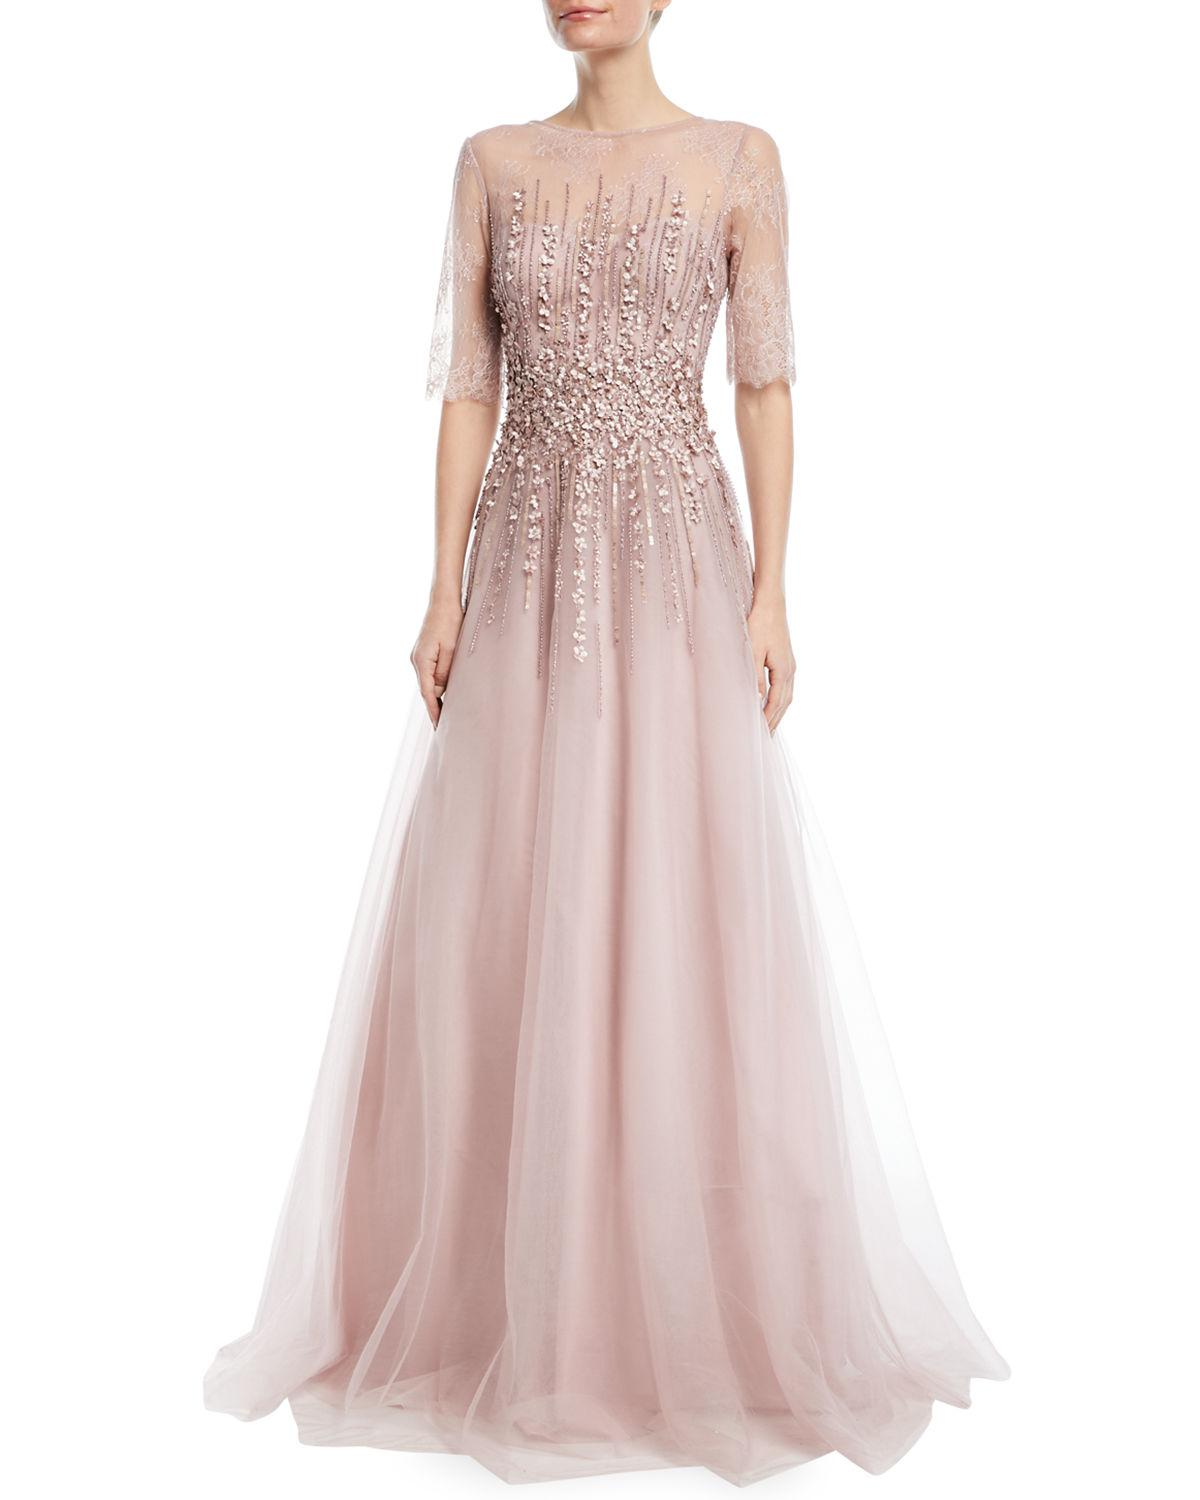 Lyst - Teri Jon Beaded Lace & Tulle Gown in Pink